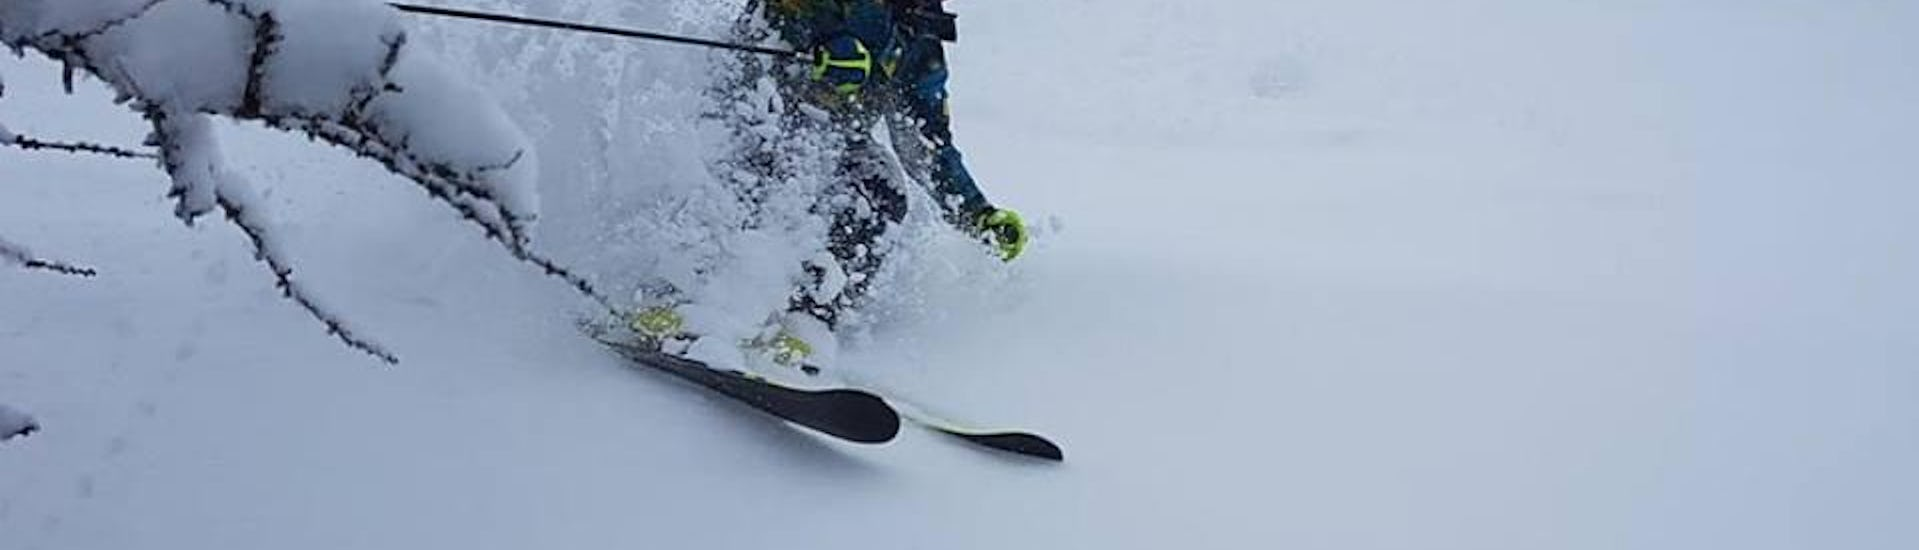 Ski Instructor Private for Adults